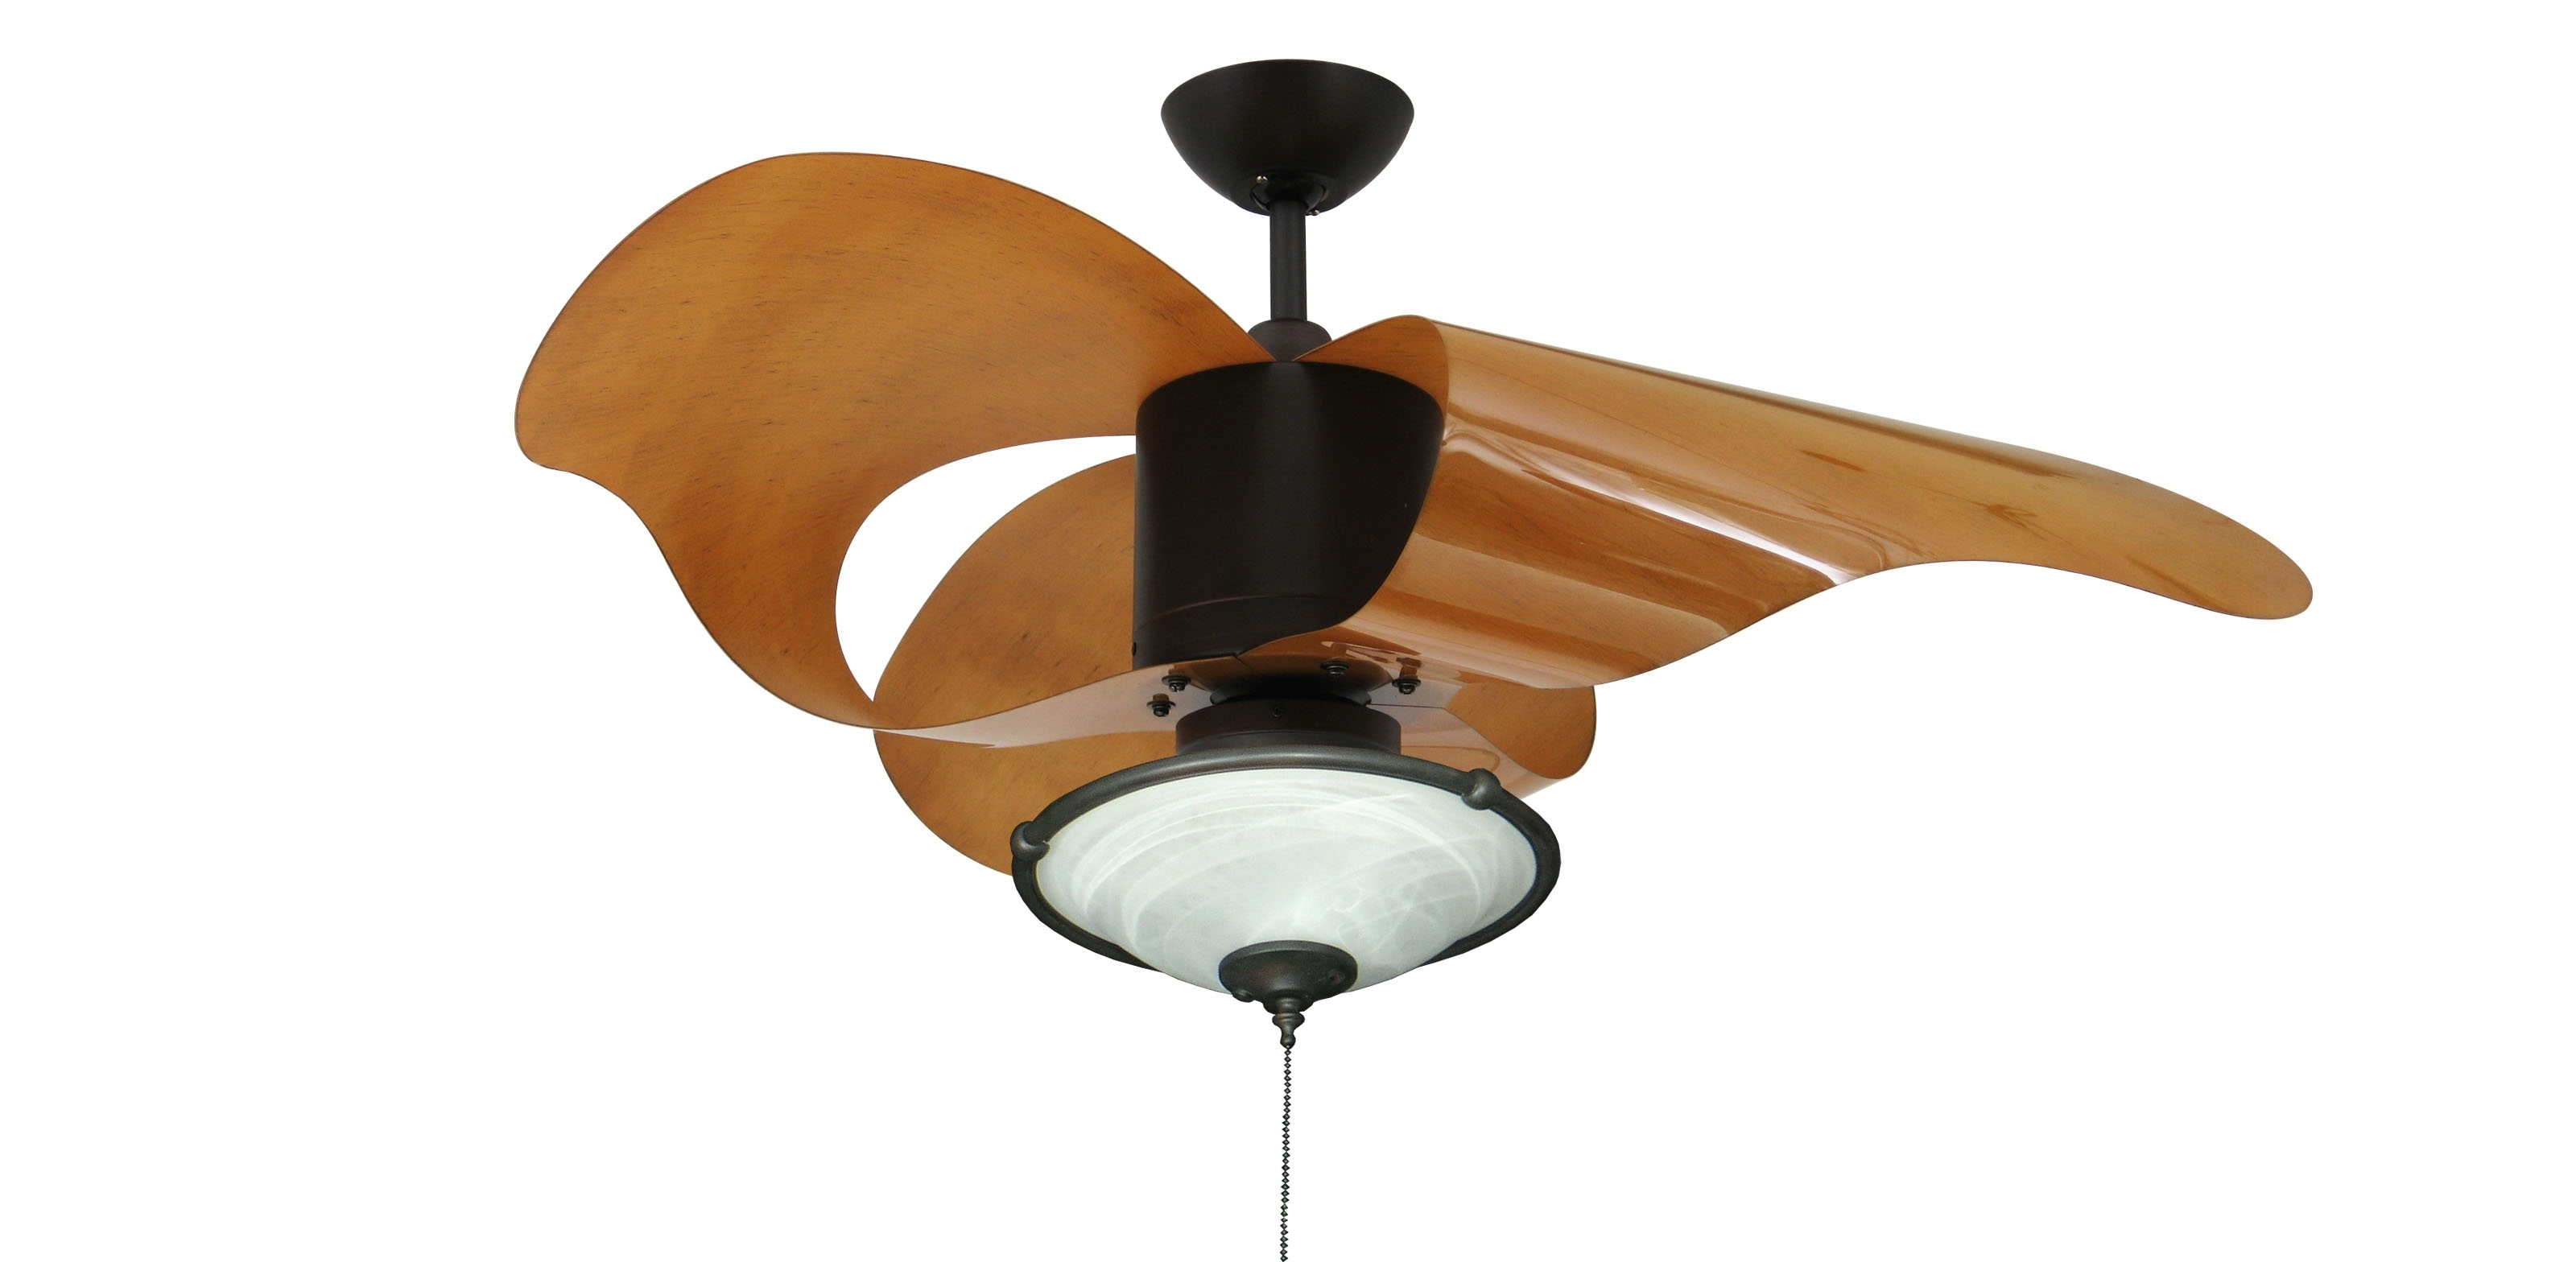 Modest Unique Big Unusual Ceiling Fans With Lights In Current Unique Outdoor Ceiling Fans With Lights (View 10 of 20)